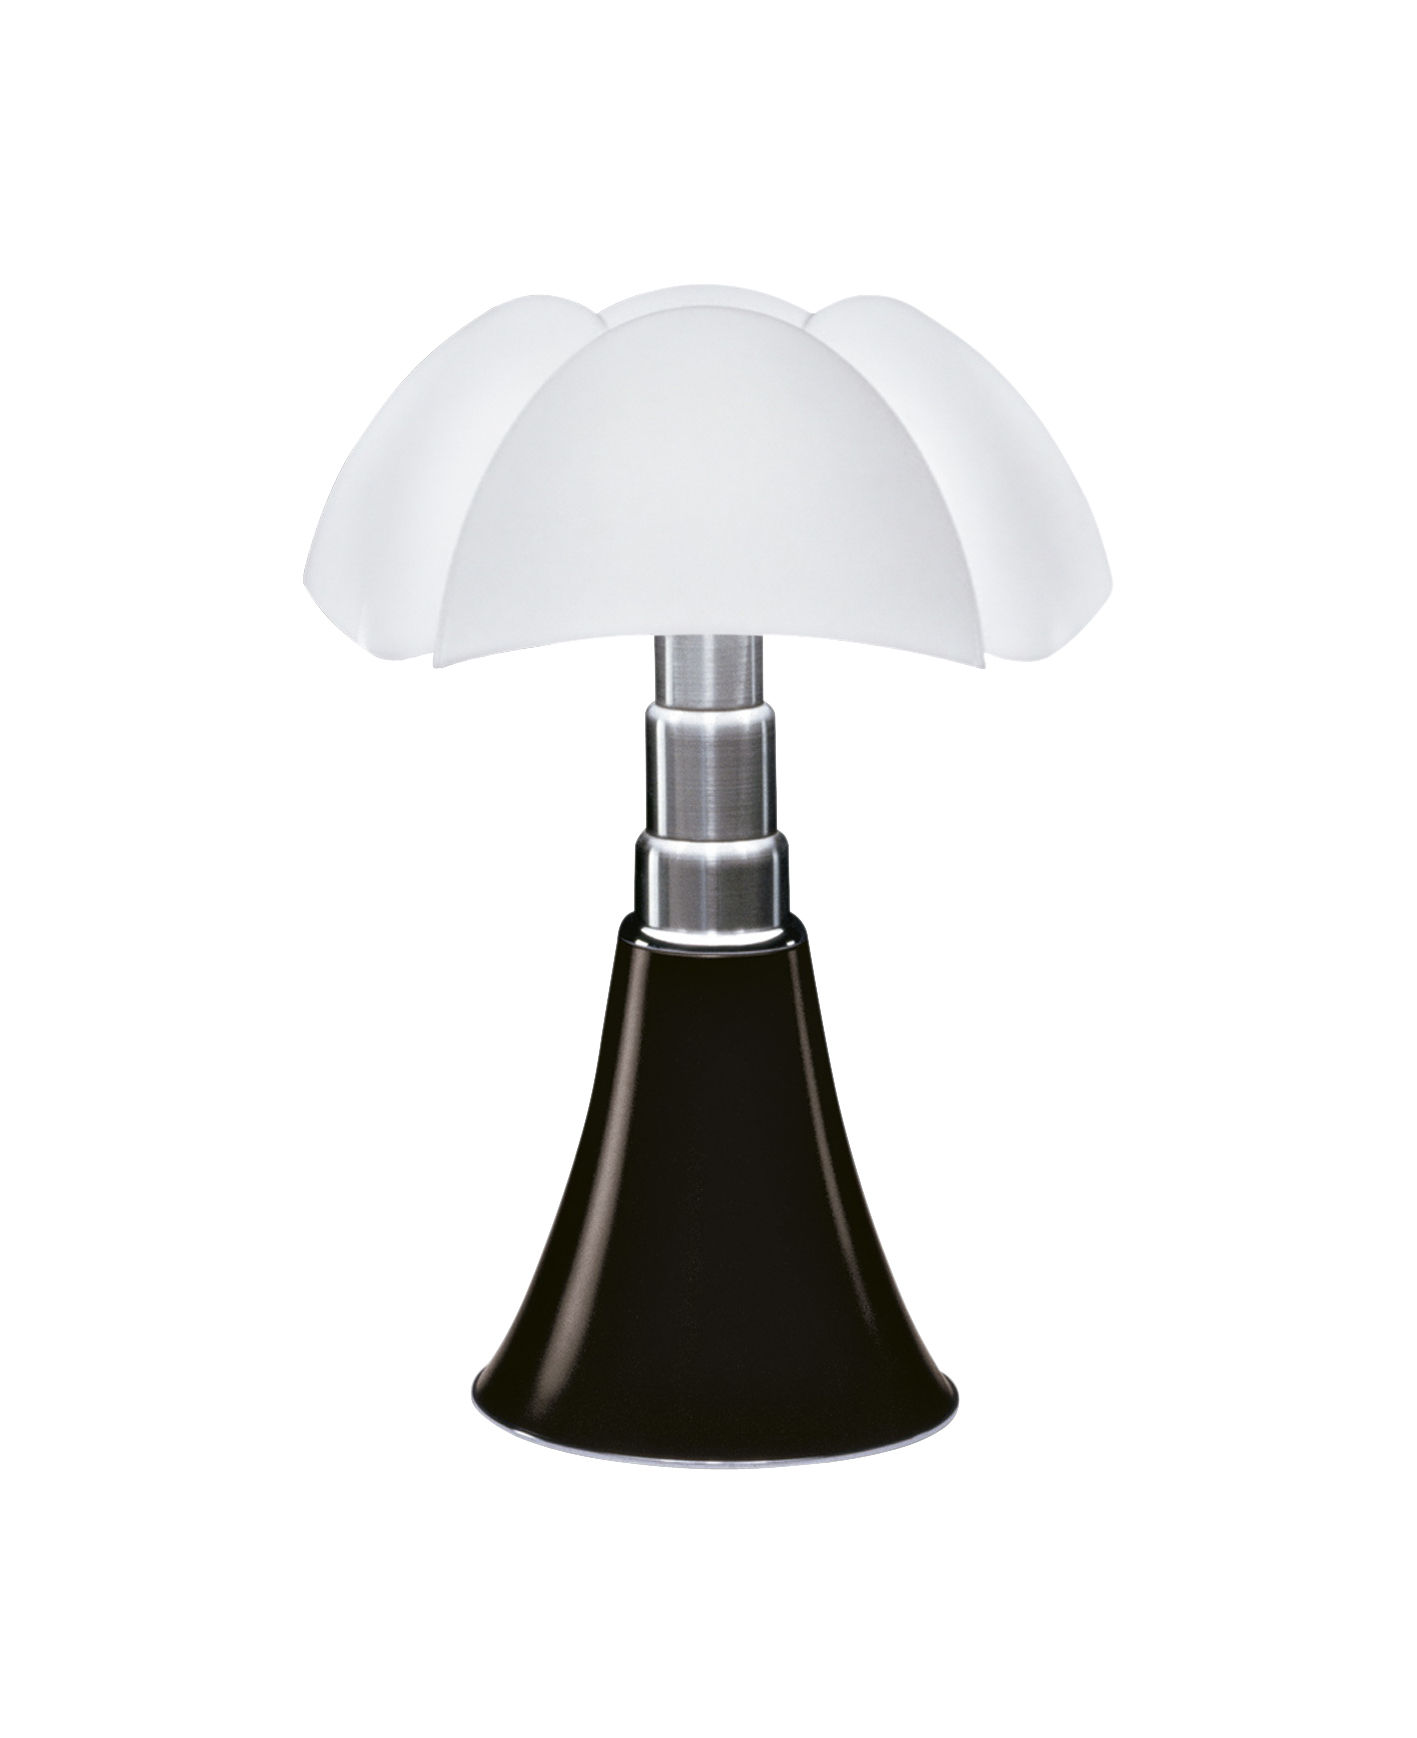 Abat Jour Design Pour Lampe Lampe De Table Minipipistrello Led Martinelli Luce